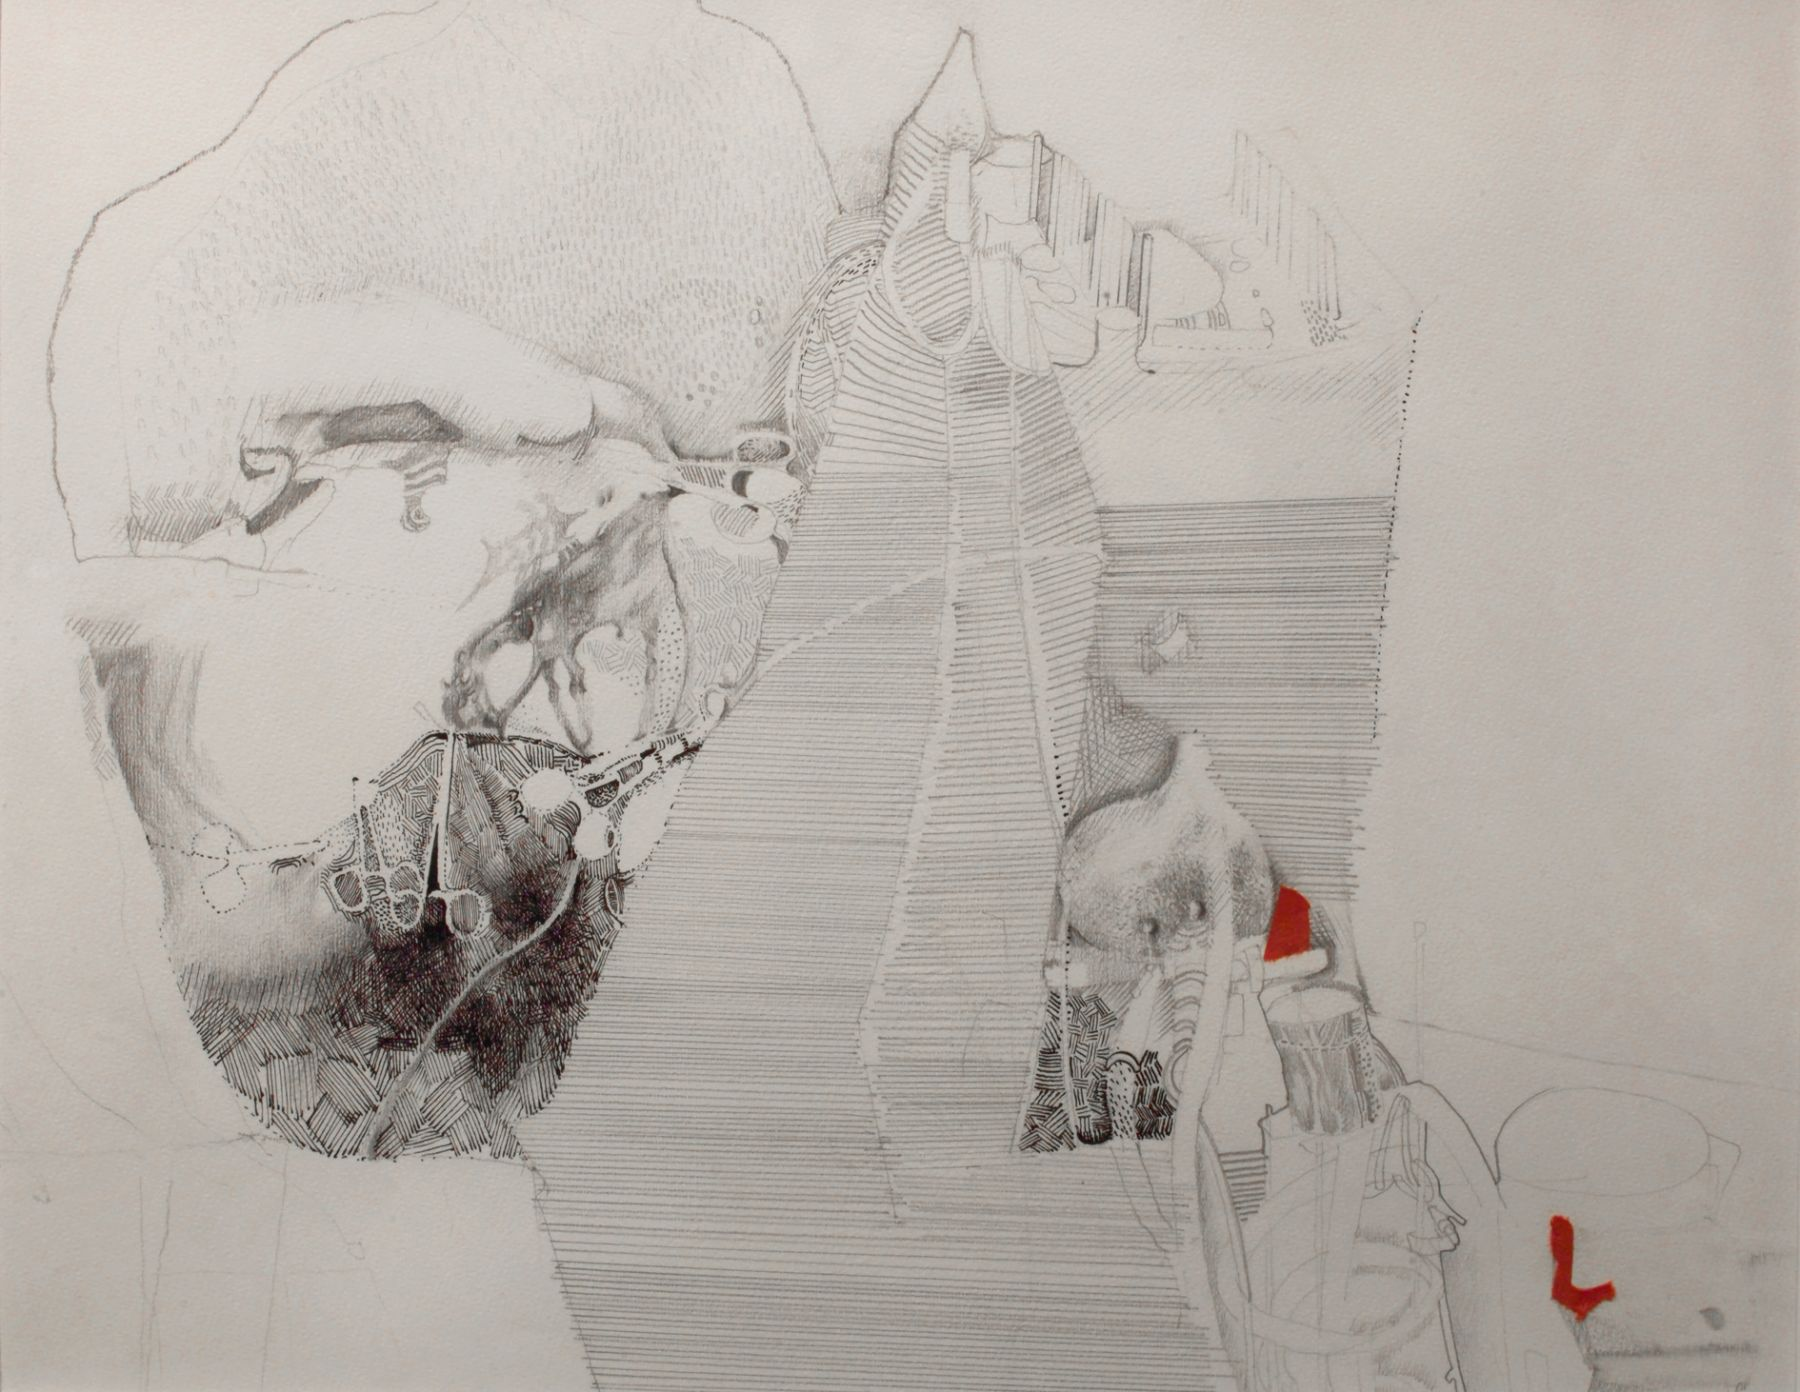 Jules Kirschenbaum, Operation, 1971, ink & pencil on paper, 11 1/2 x 15 1/4 inches